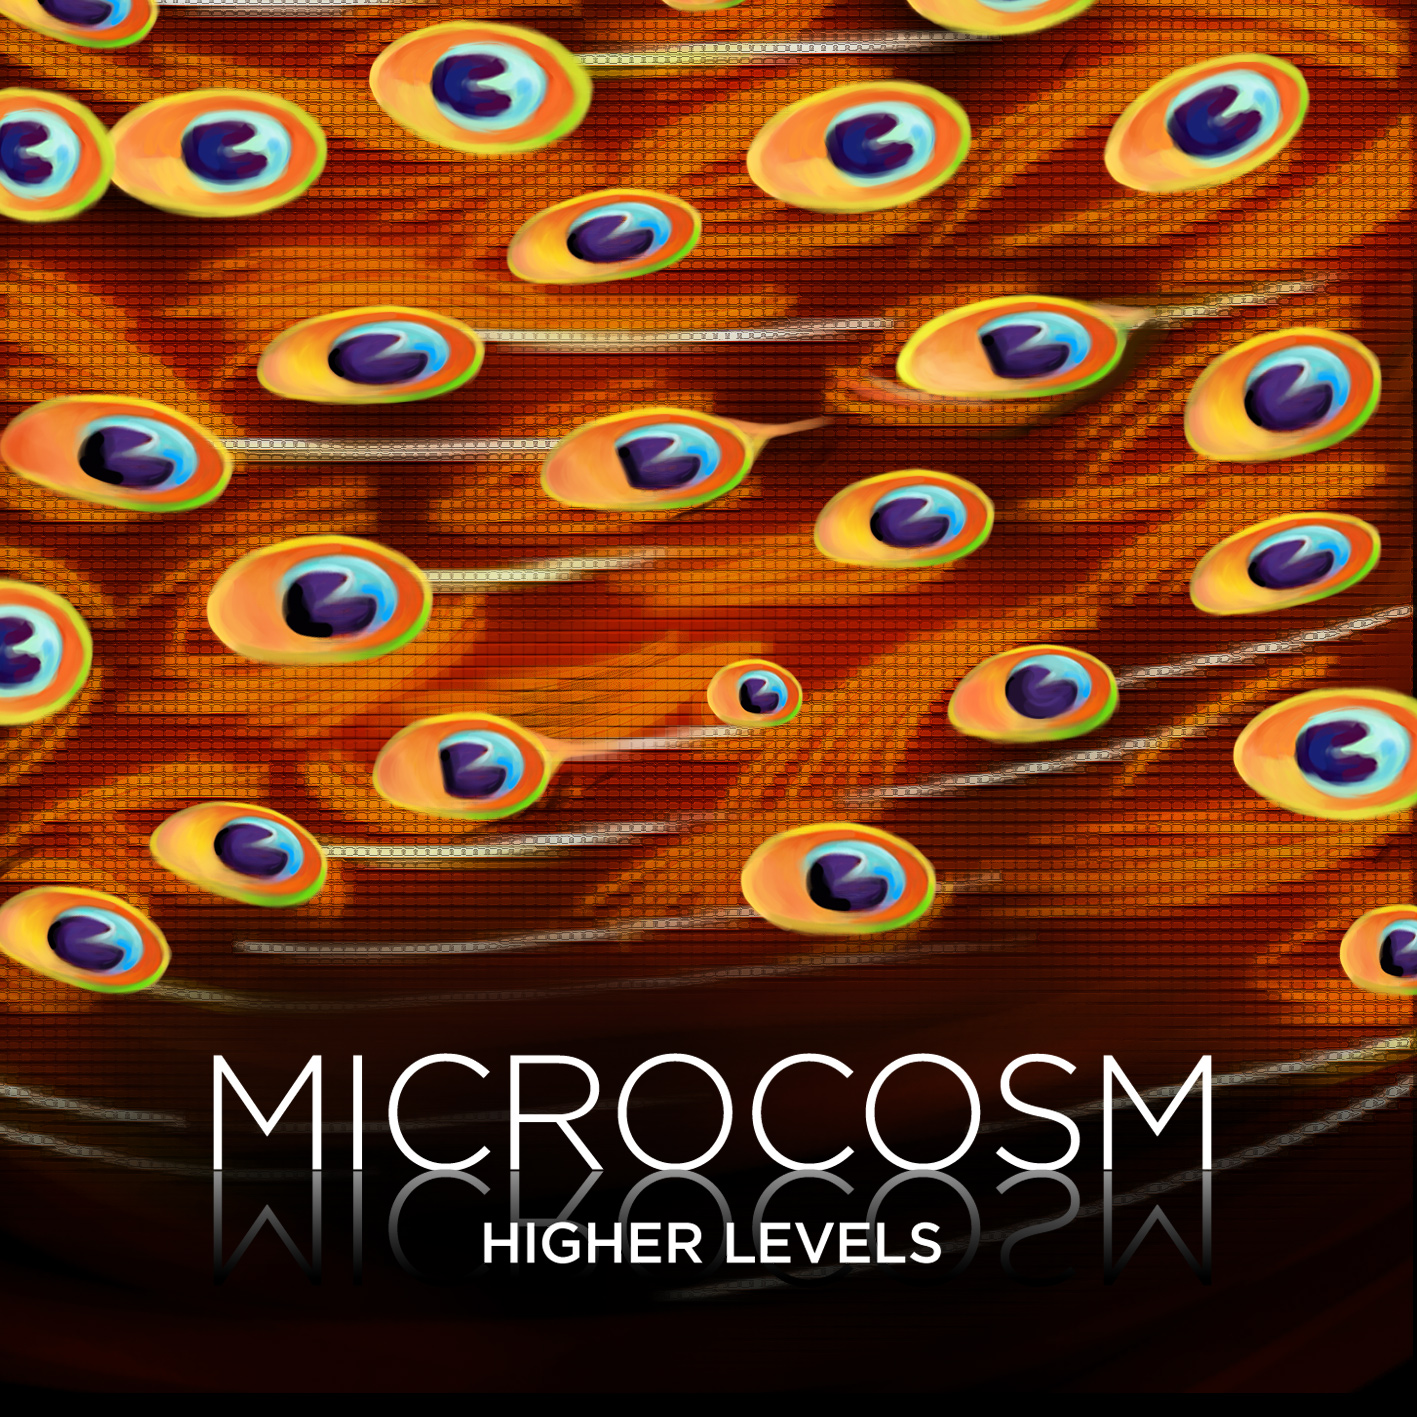 Microcosm - Higher Levels